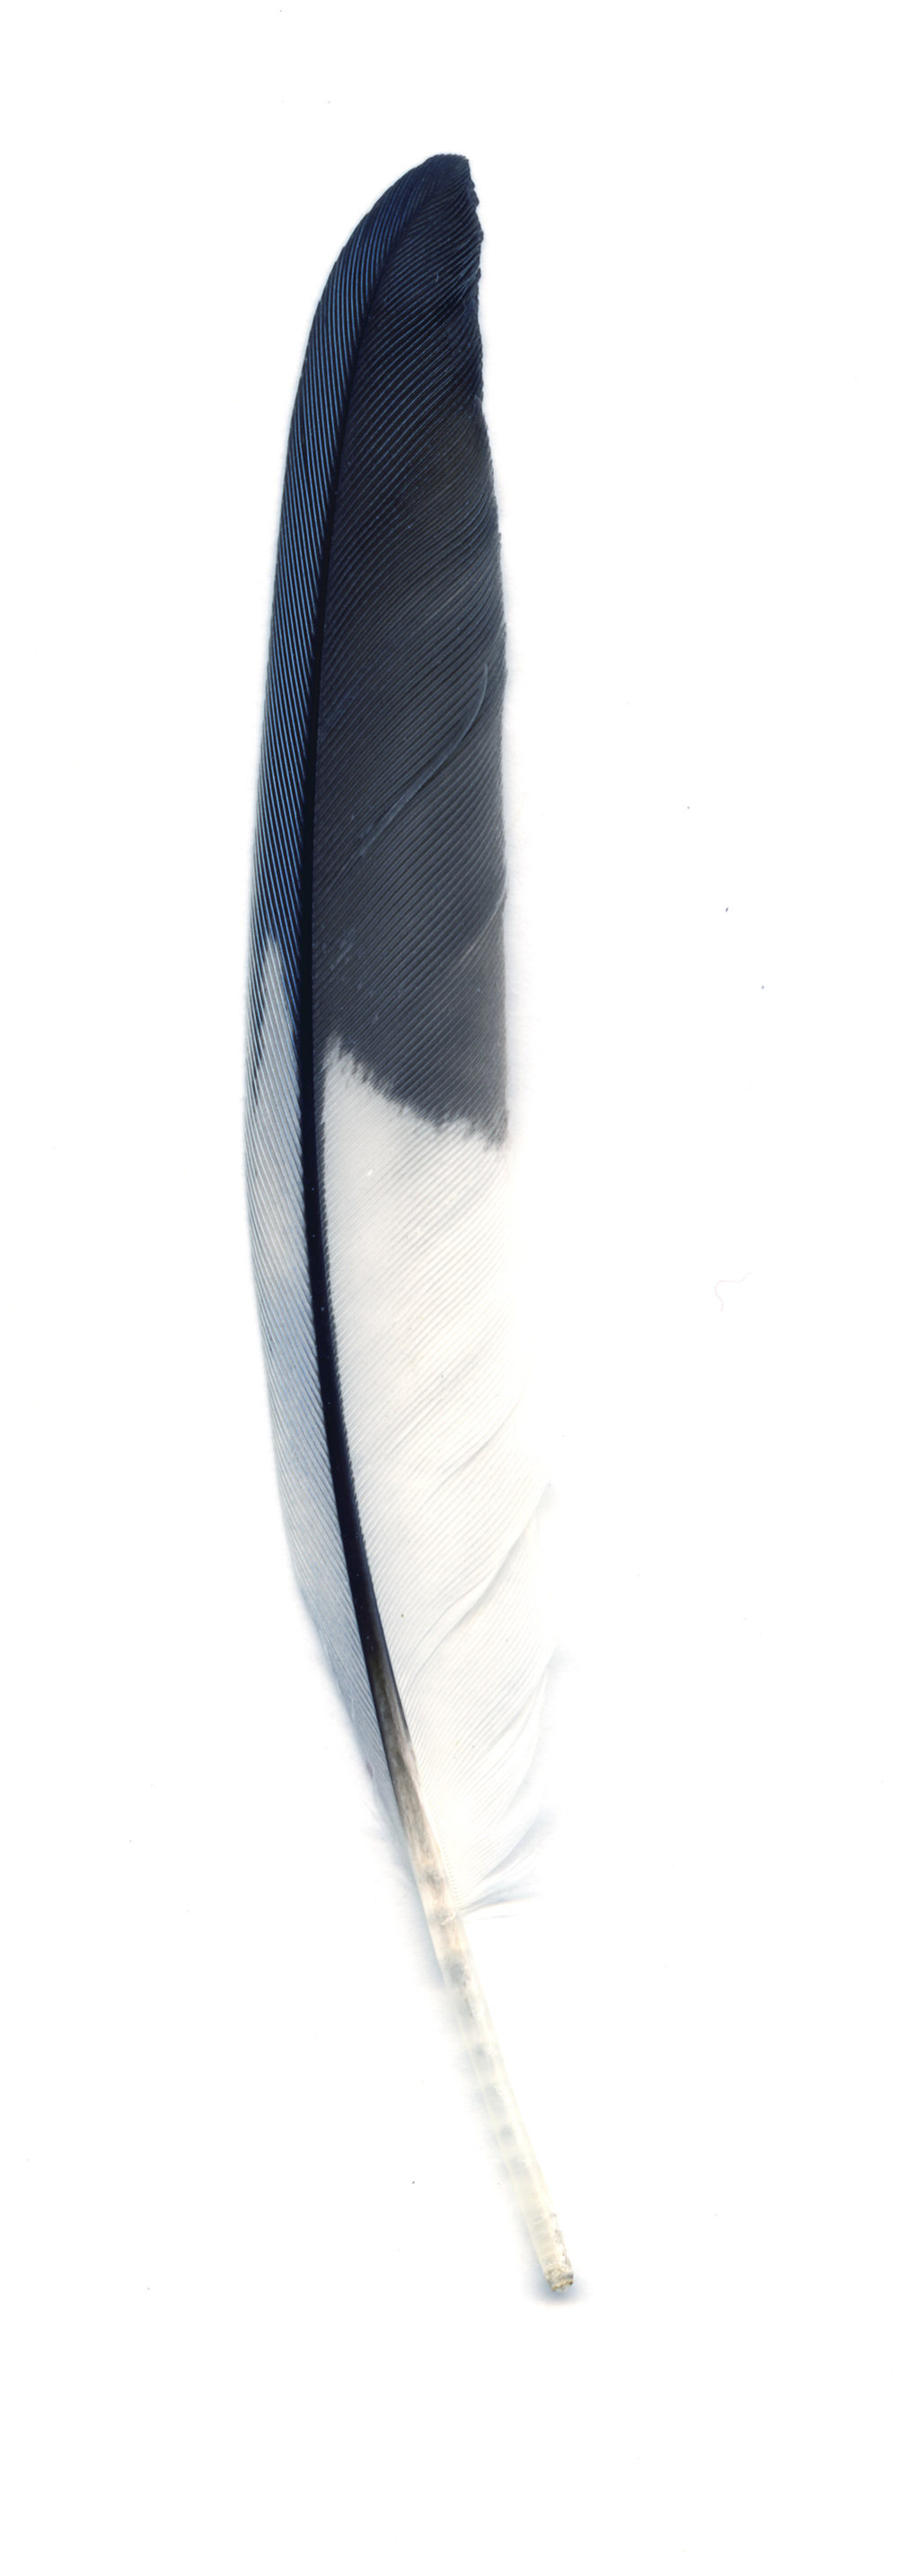 Collected Poems, Feathers, BlueJay (White, Gray and Blue),   13x39 inches, Ink Jet print on Washi paper, 2006, Unique print